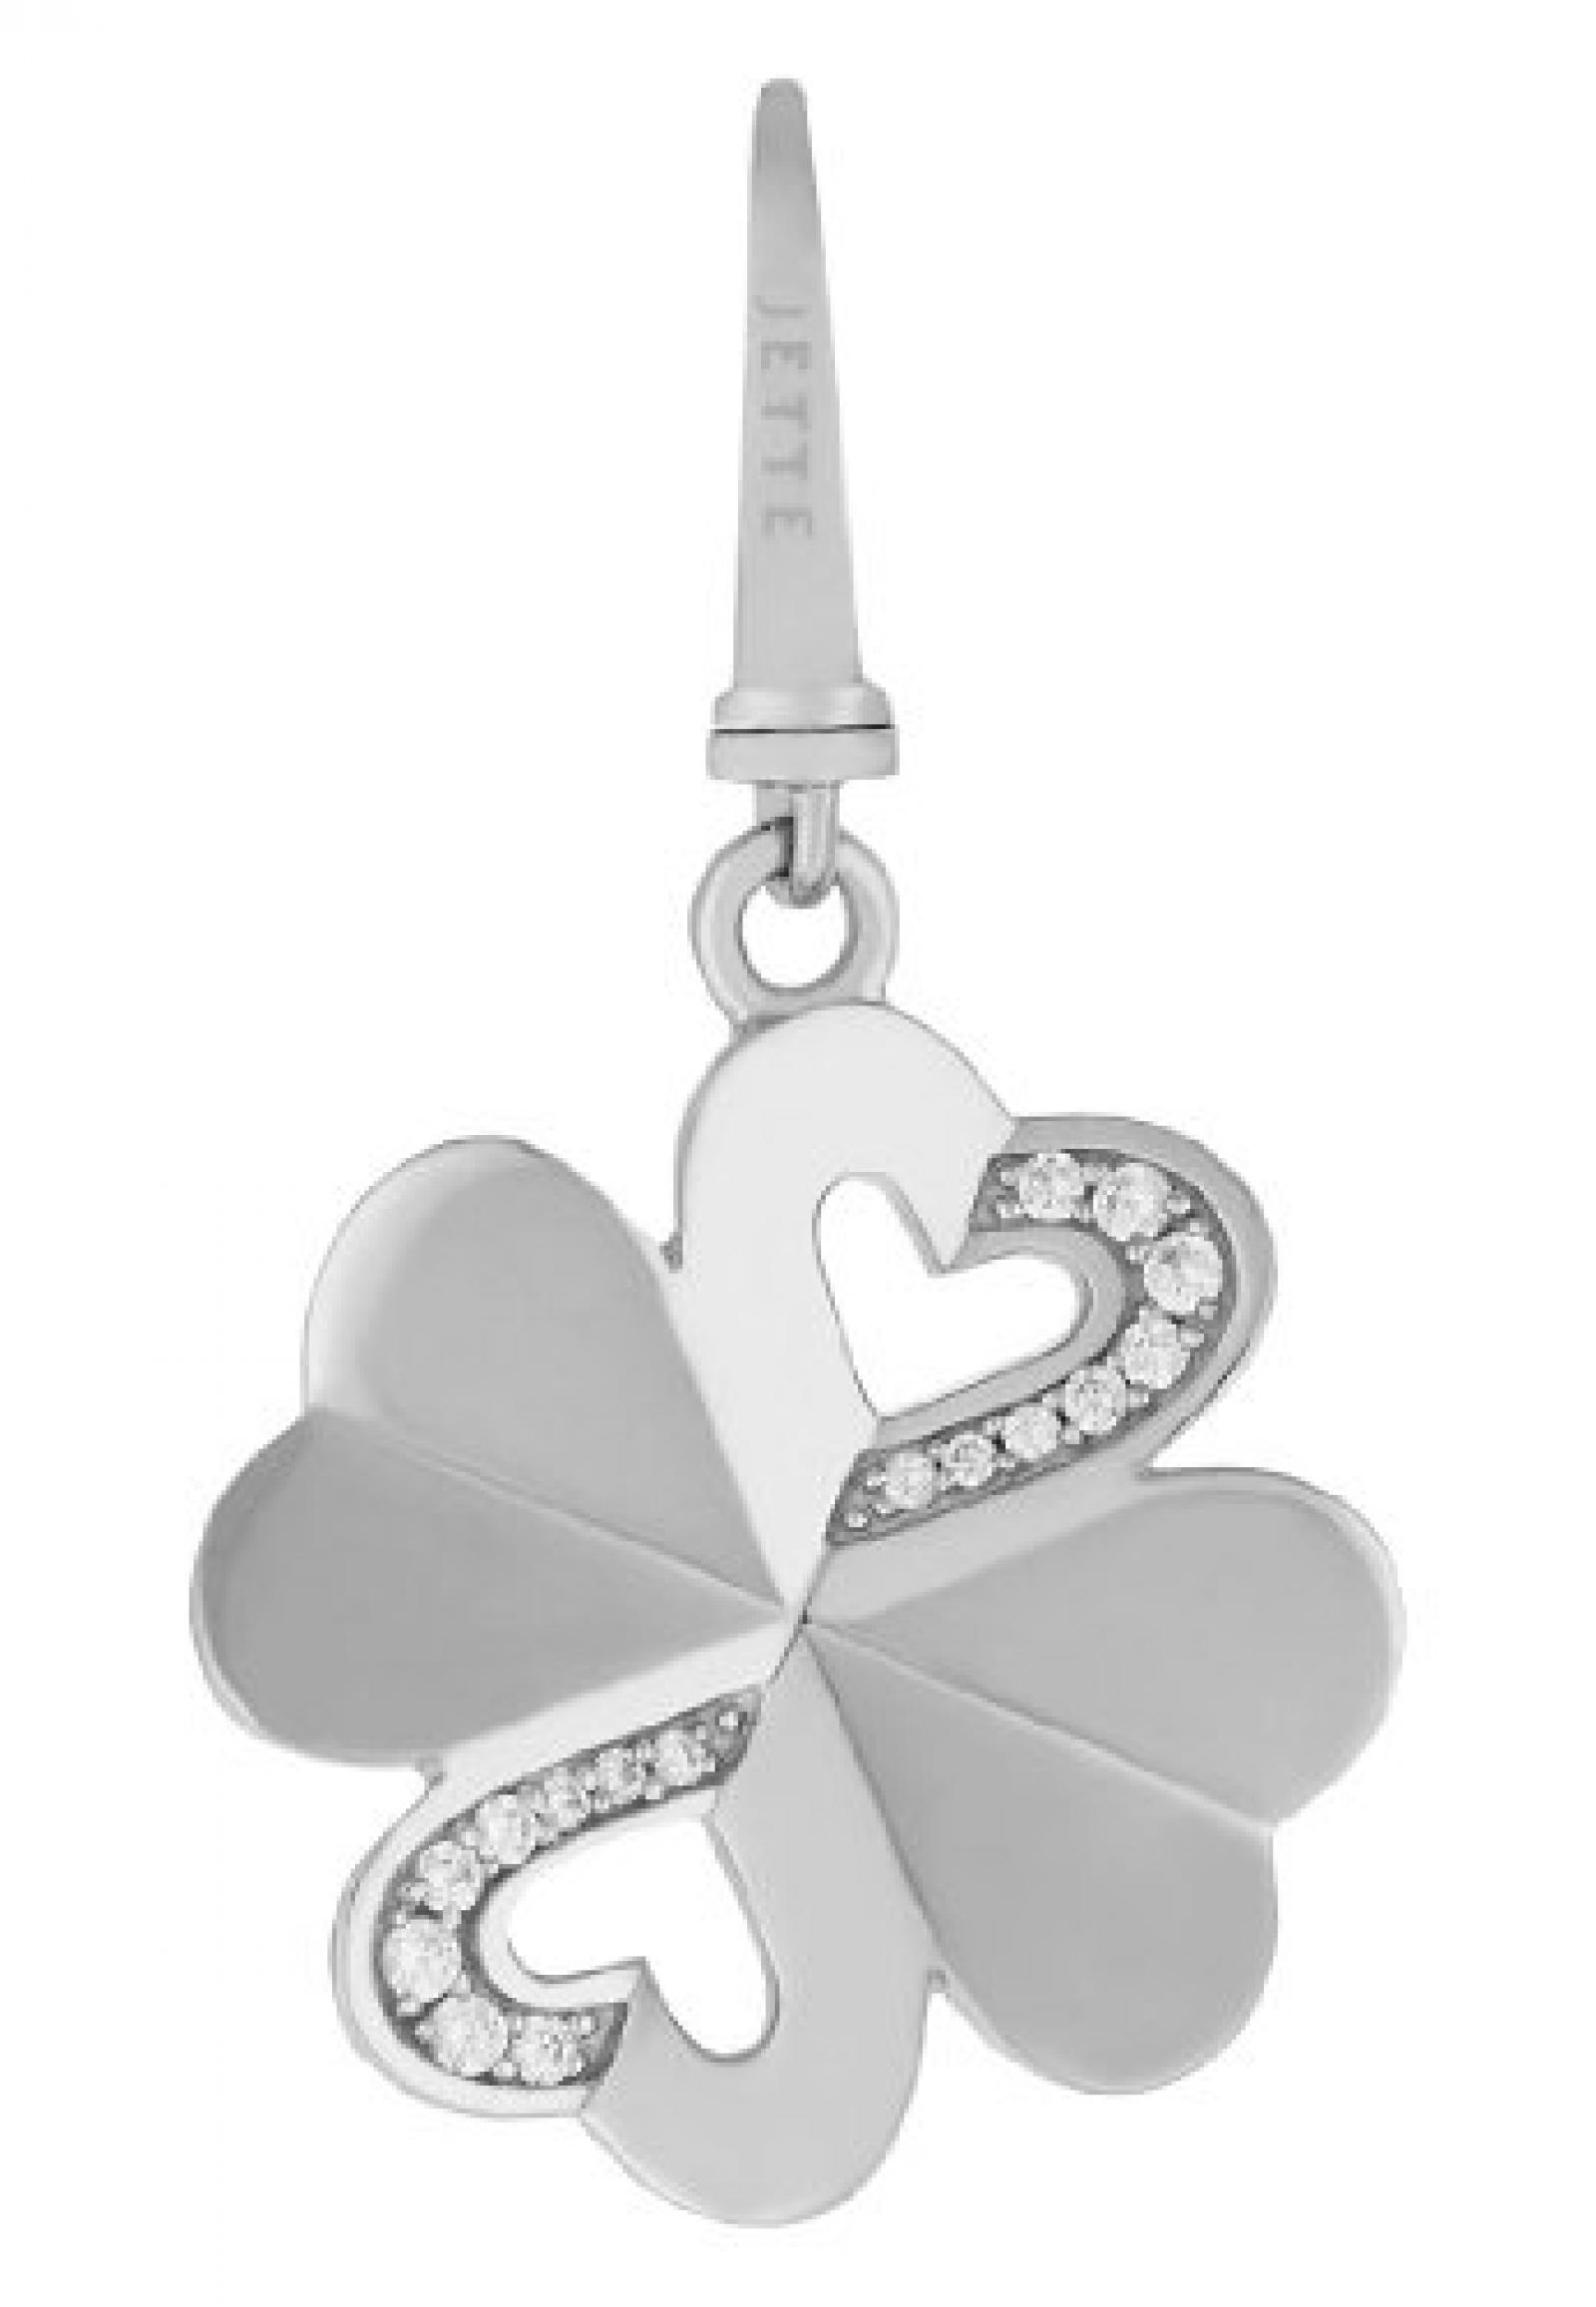 JETTE Charms Damen-Charm CHARM 925er Silber 16 Zirkonia One Size, silber